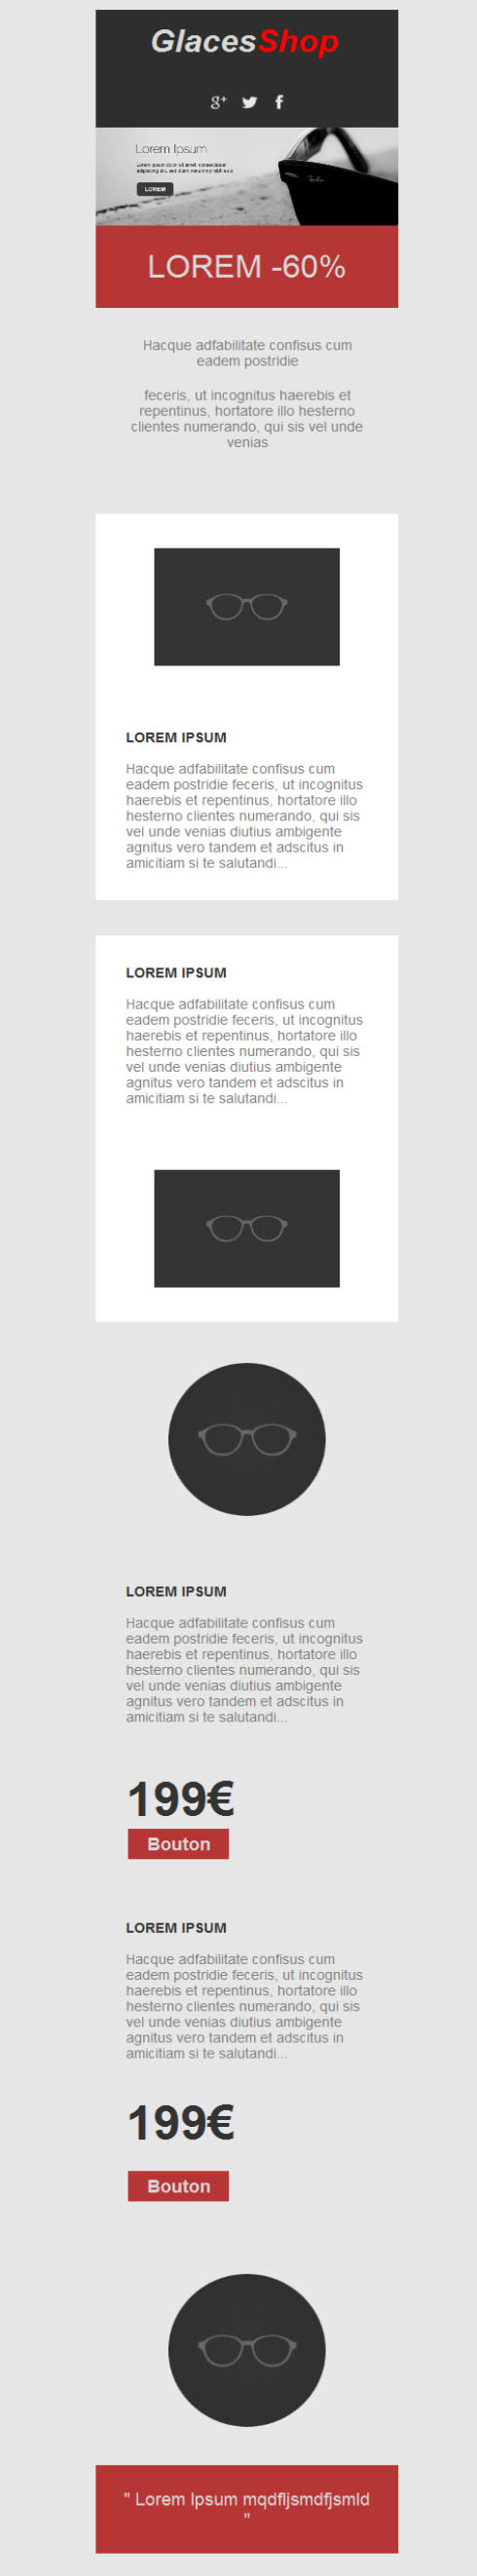 Templates Emailing Glasses Shop Sarbacane